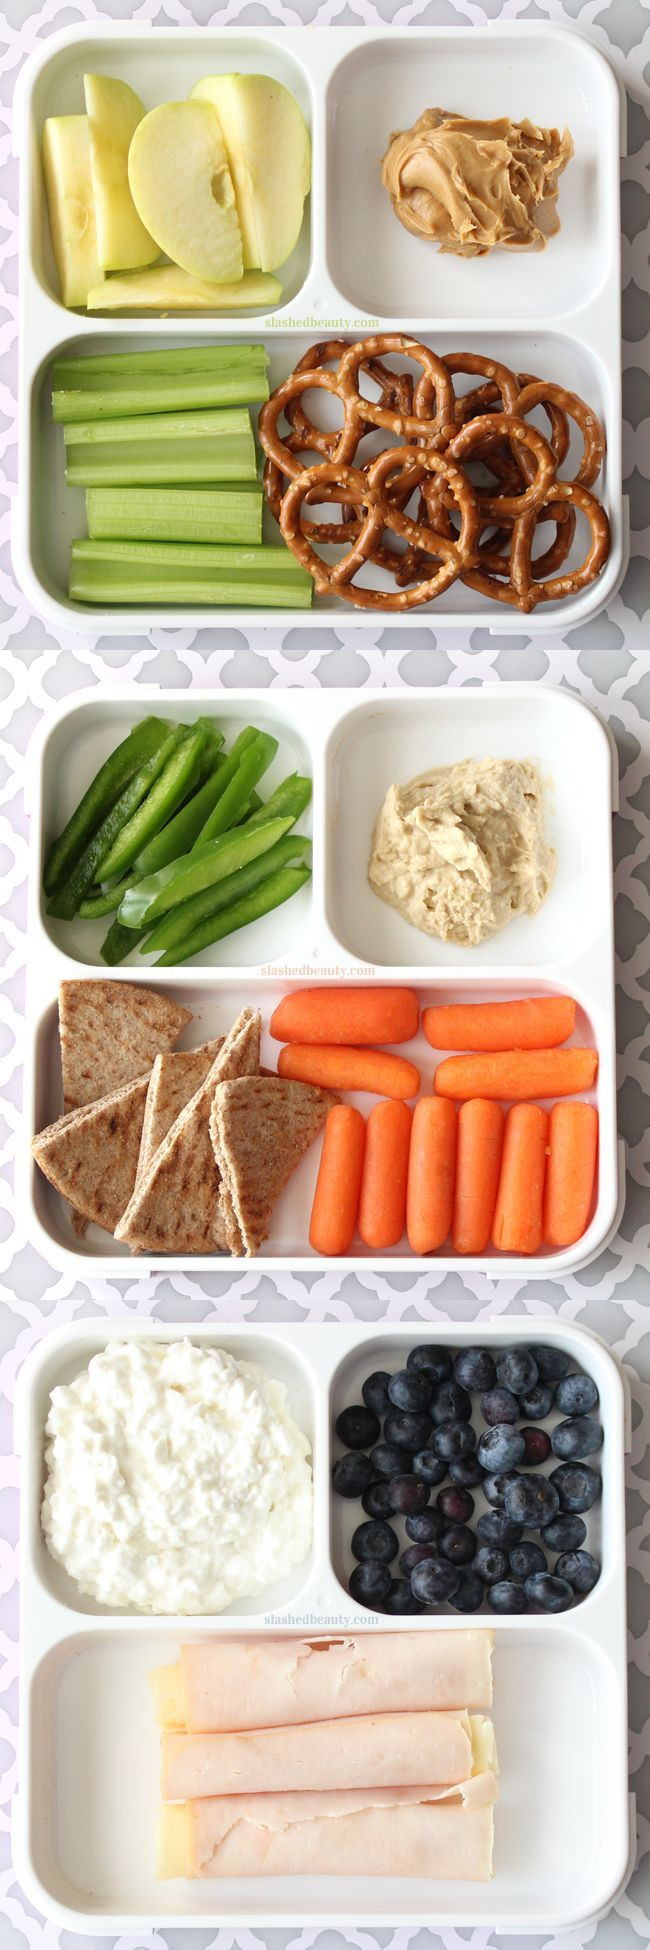 Healthy Snacks Ideas  549 best images about Healthy Snacks For Kids on Pinterest